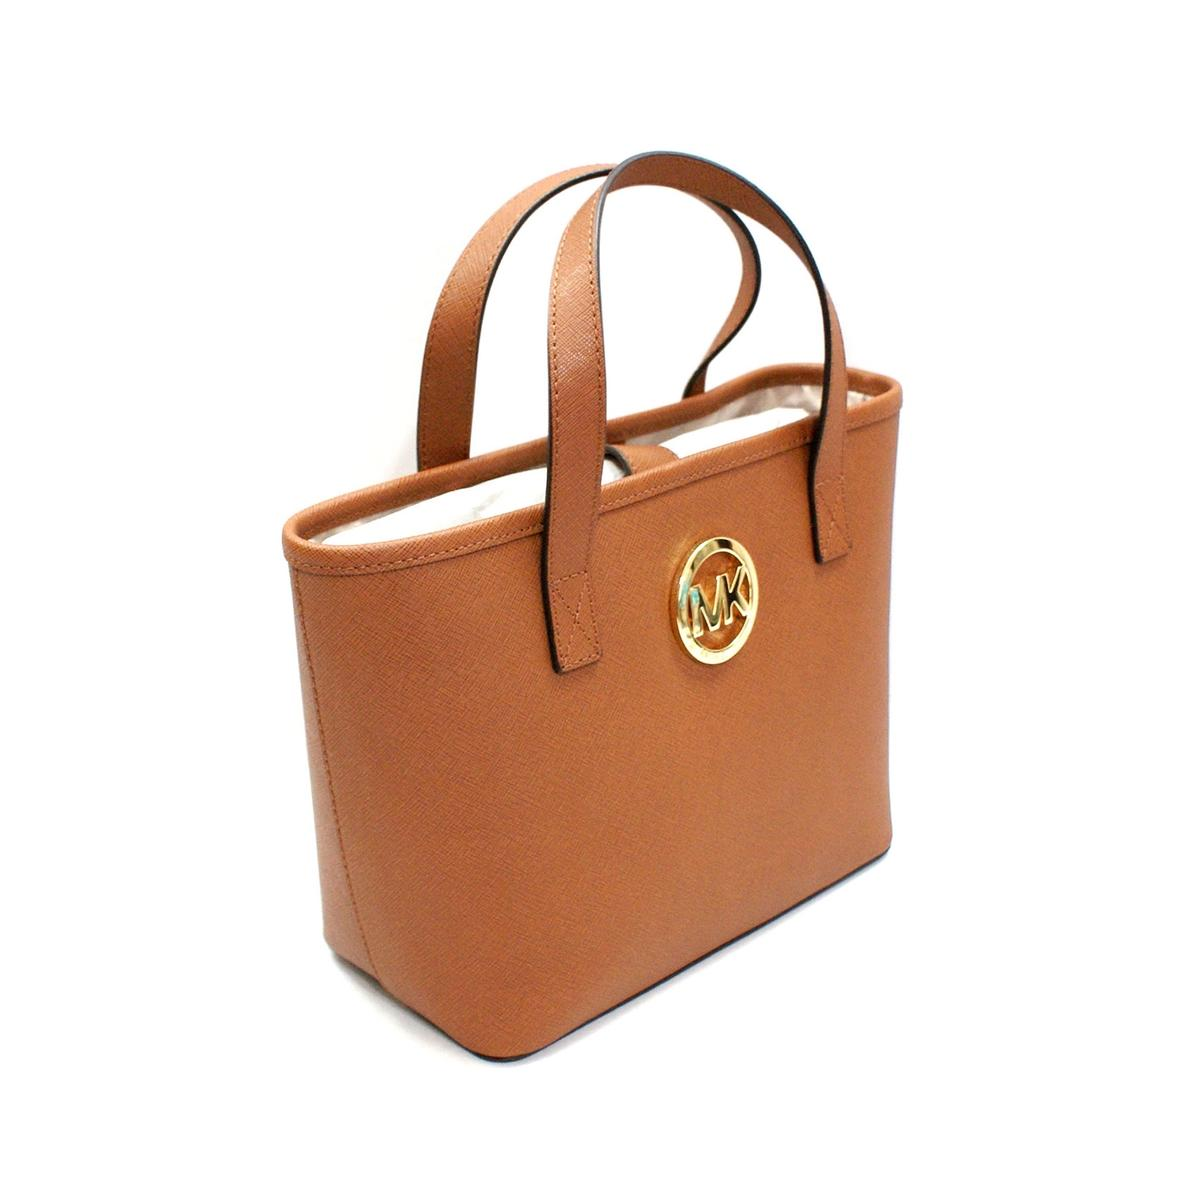 b7bcf114e58cd ... netherlands home michael kors jet set xs small travel tote brown. click  thumbnail to zoom